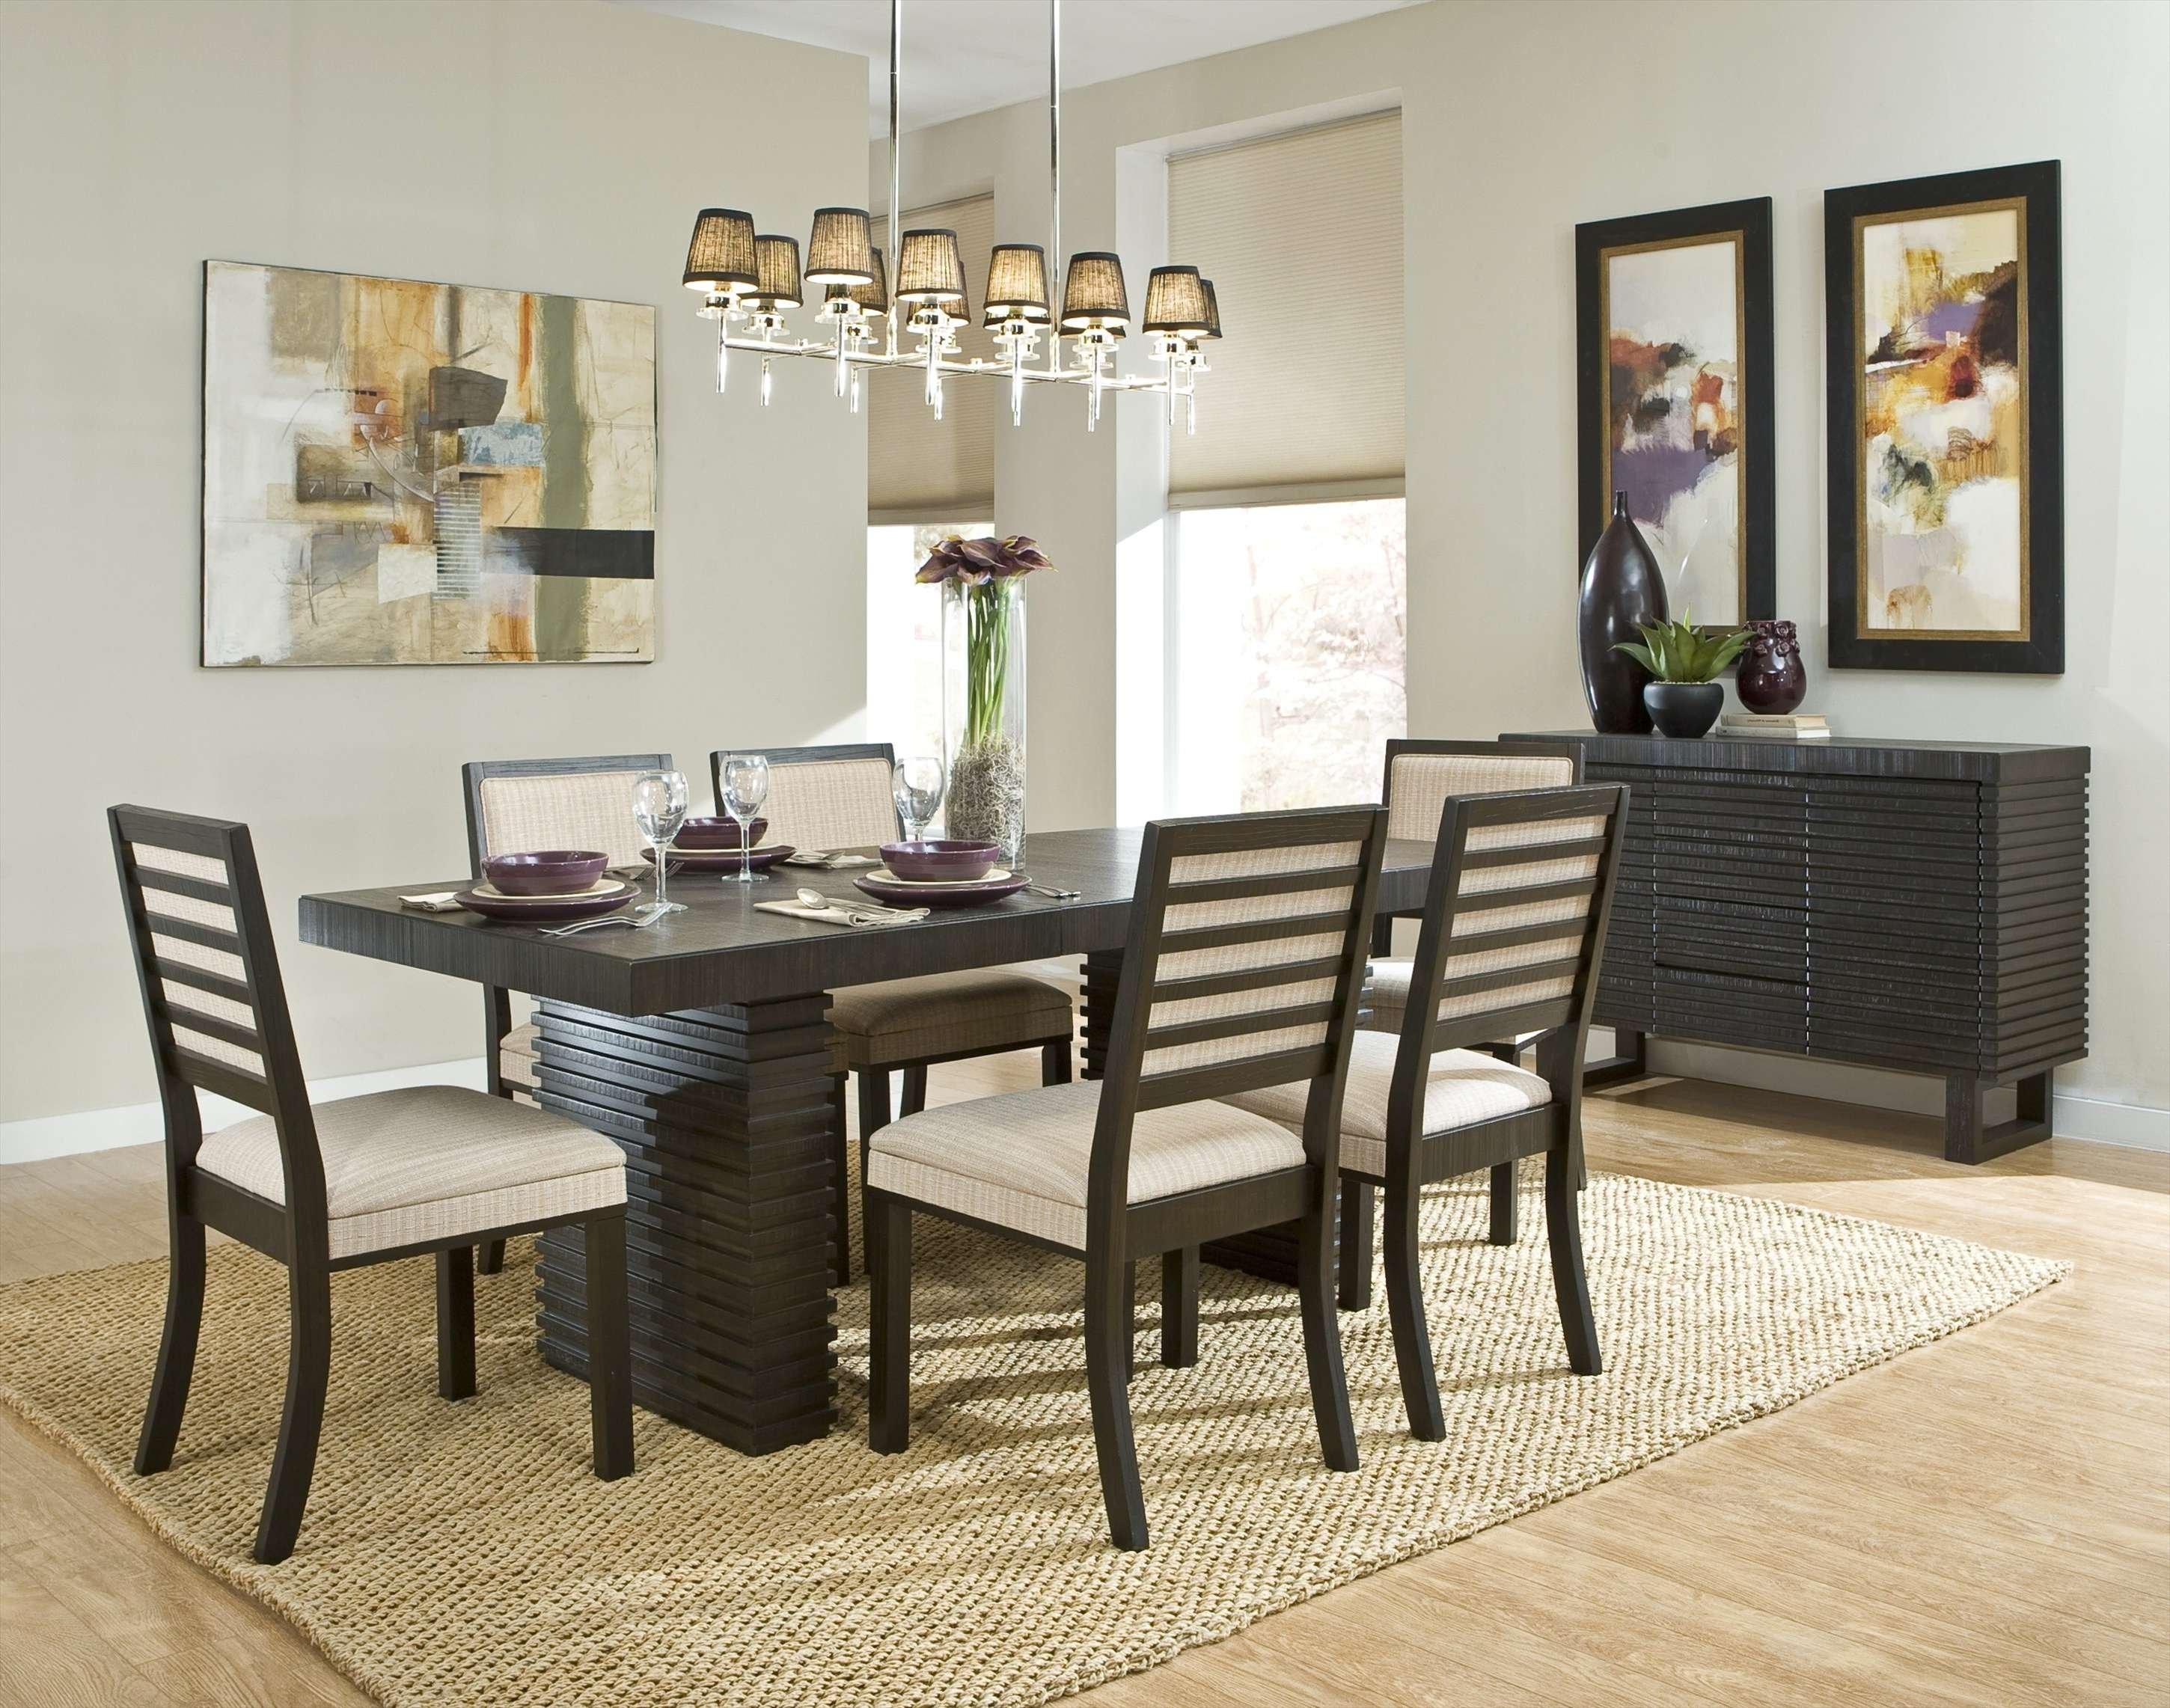 Dining Room Sideboard Decorating Ideas ~ Dining Room Pertaining To Dining Room Sets With Sideboards (View 2 of 20)